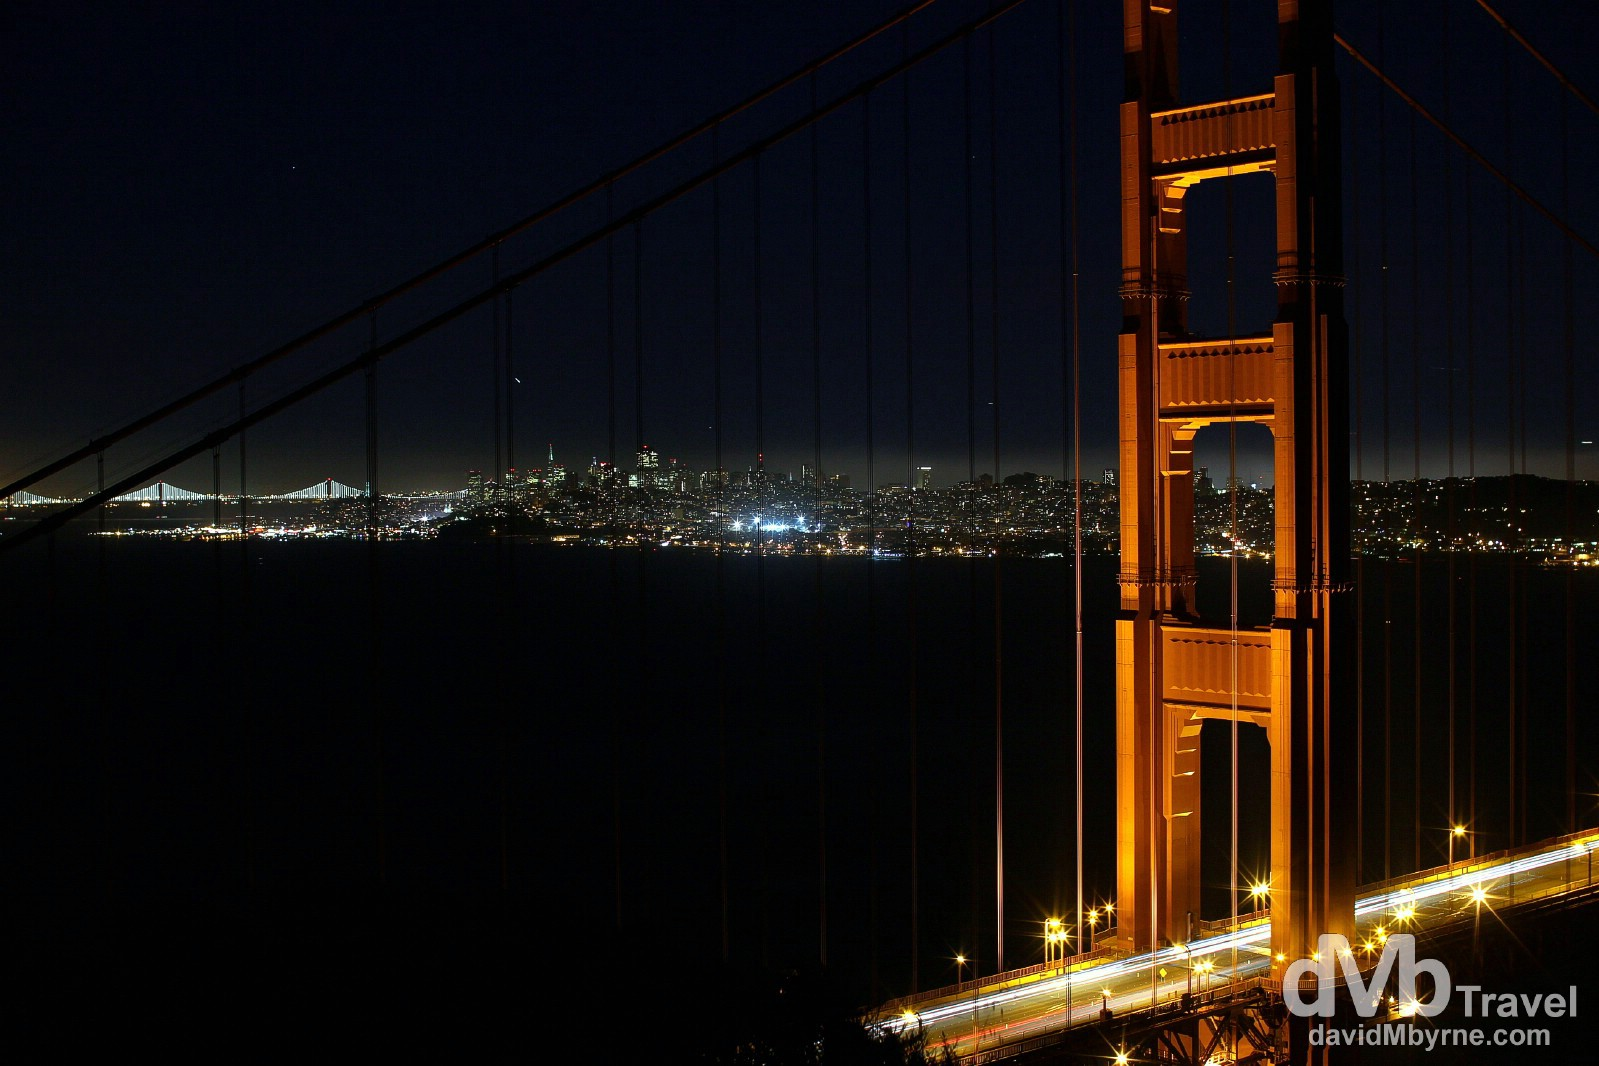 The north pylon of the Golden Gate Bridge, the city of San Francisco & the distant lights of the Bay Bridge as seen from Battery Spencer, Marin Headlands, San Francisco, California, USA. April 10th 2013.